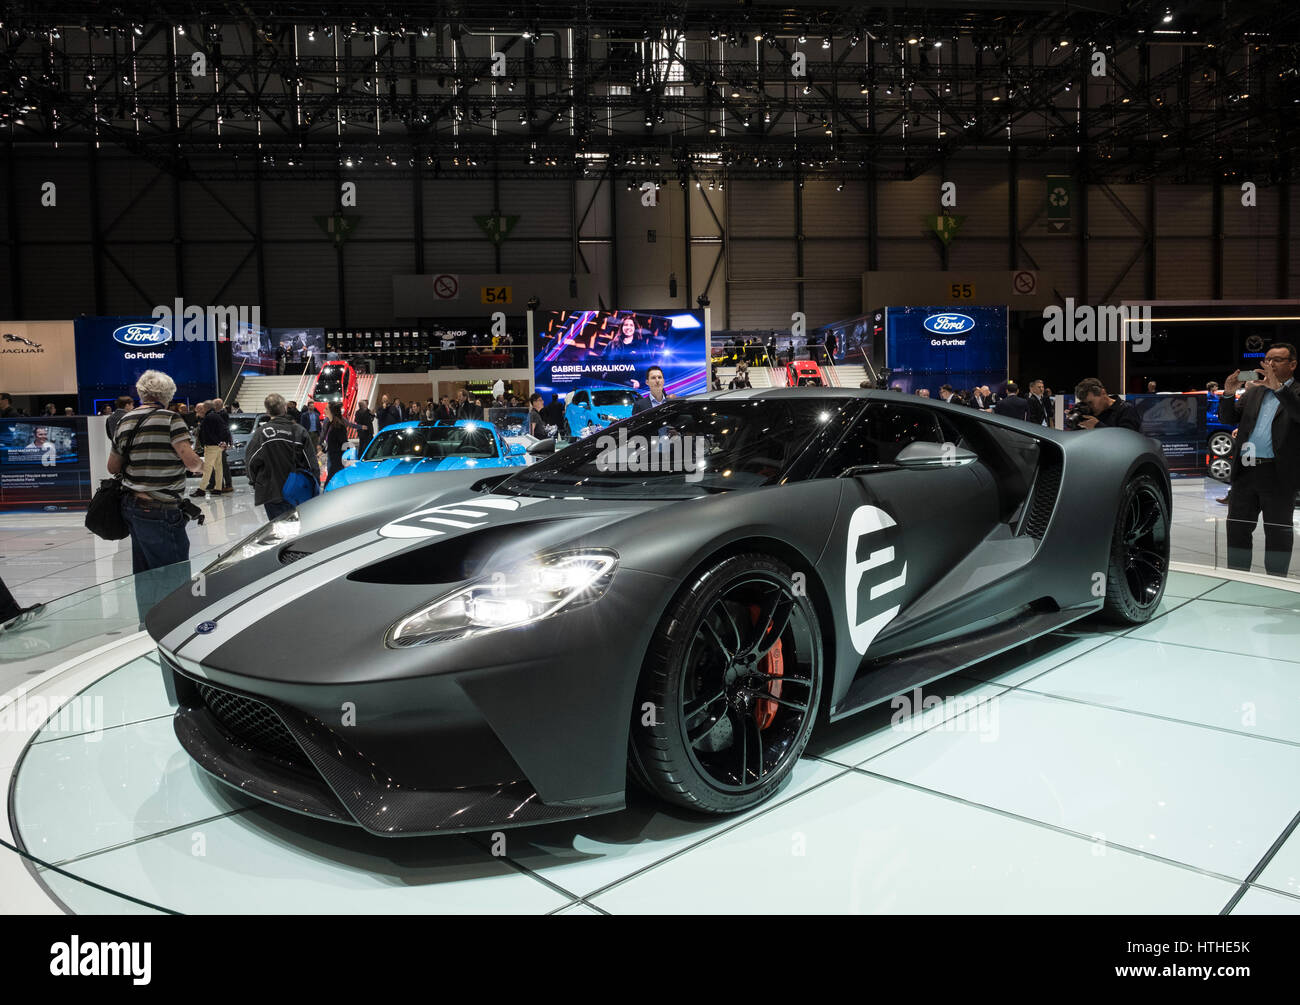 New Ford Gt  Heritage Edition At Th Geneva International Motor Show In Geneva Switzerland